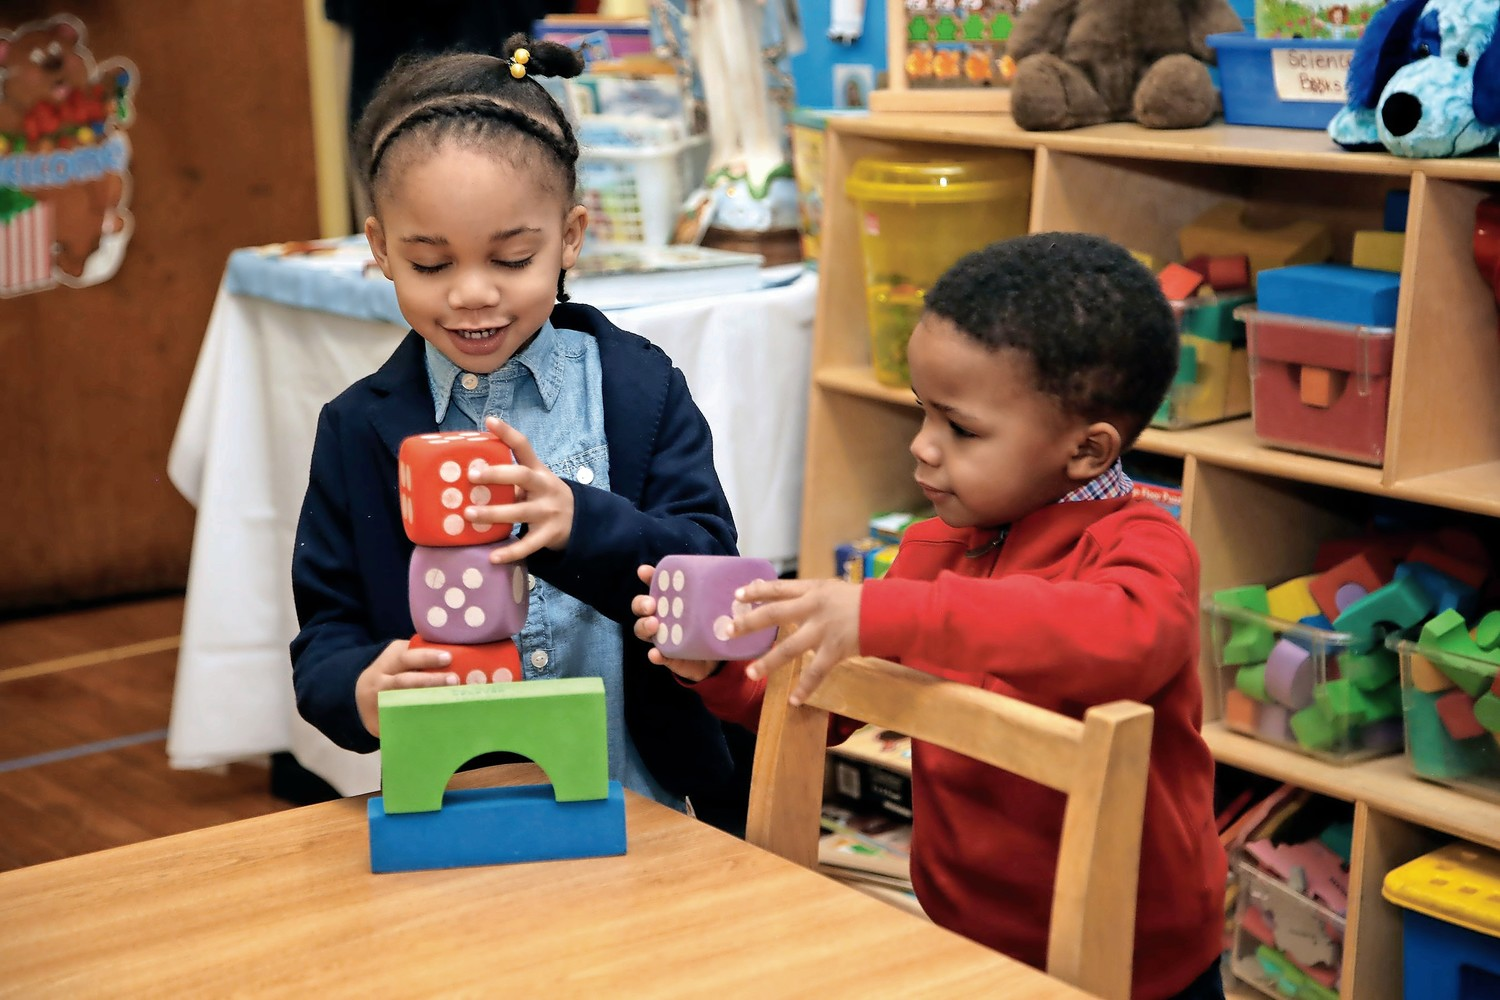 Five-year-old Annalise Bazile and her brother Liam, 3, explore the wonders of kindergarten during Open House at Our Lady of Lourdes School in Malverne.